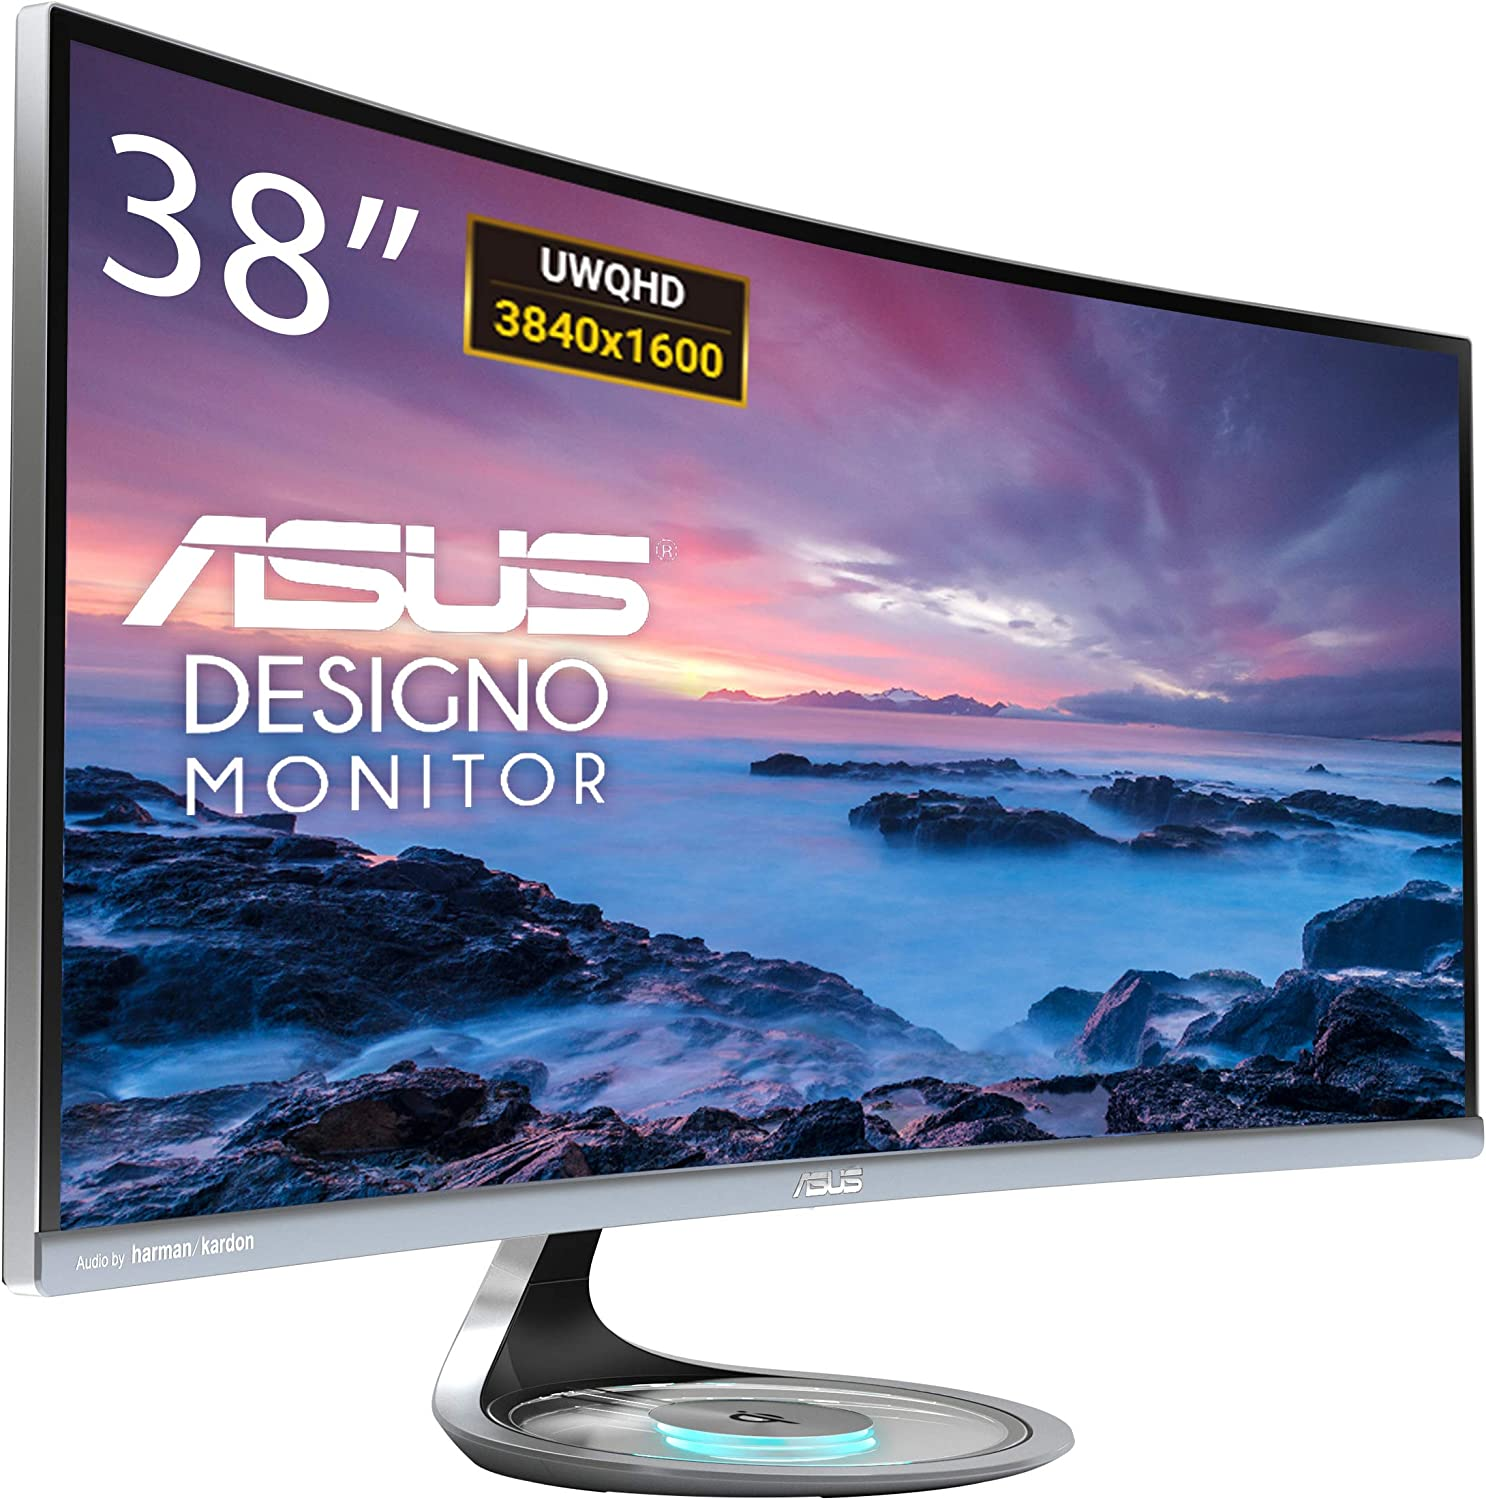 ASUS Designo Curved MX38VC 37.5″ (3840 x 1600) Uwqhd IPS Monitor with Qi Charging